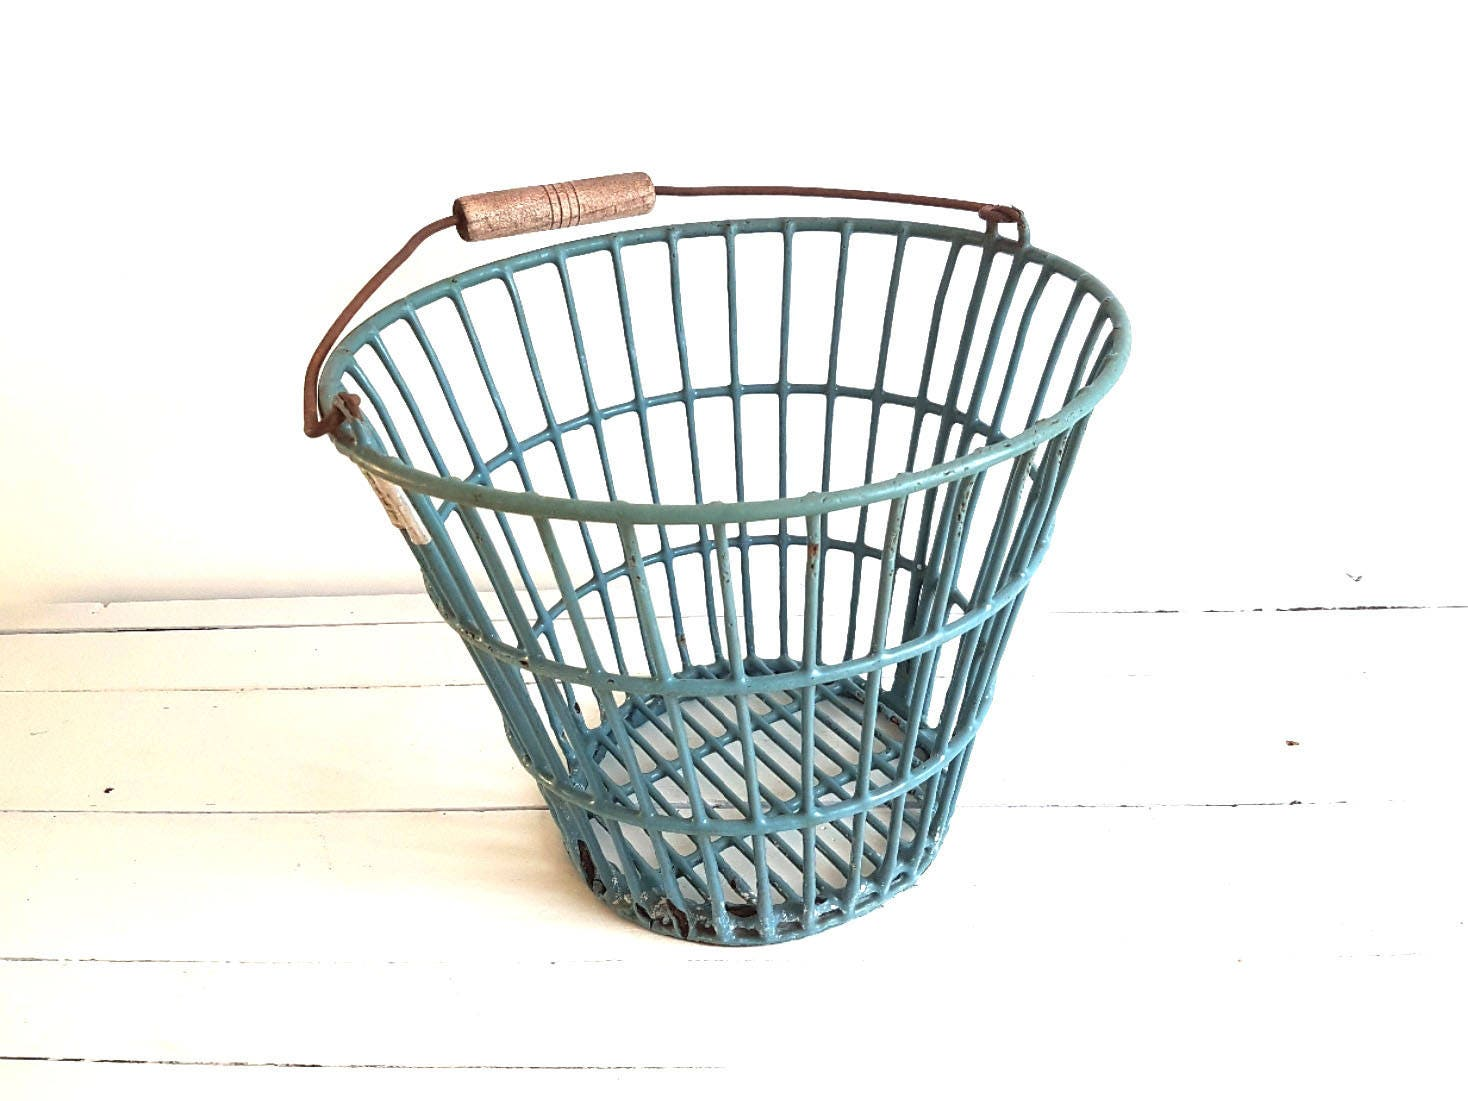 Vintage Potato Basket U2022 Metal Wire Basket With Handle U2022 Metal Storage Basket  U2022 Industrial Decor U2022 Petrol Bucket